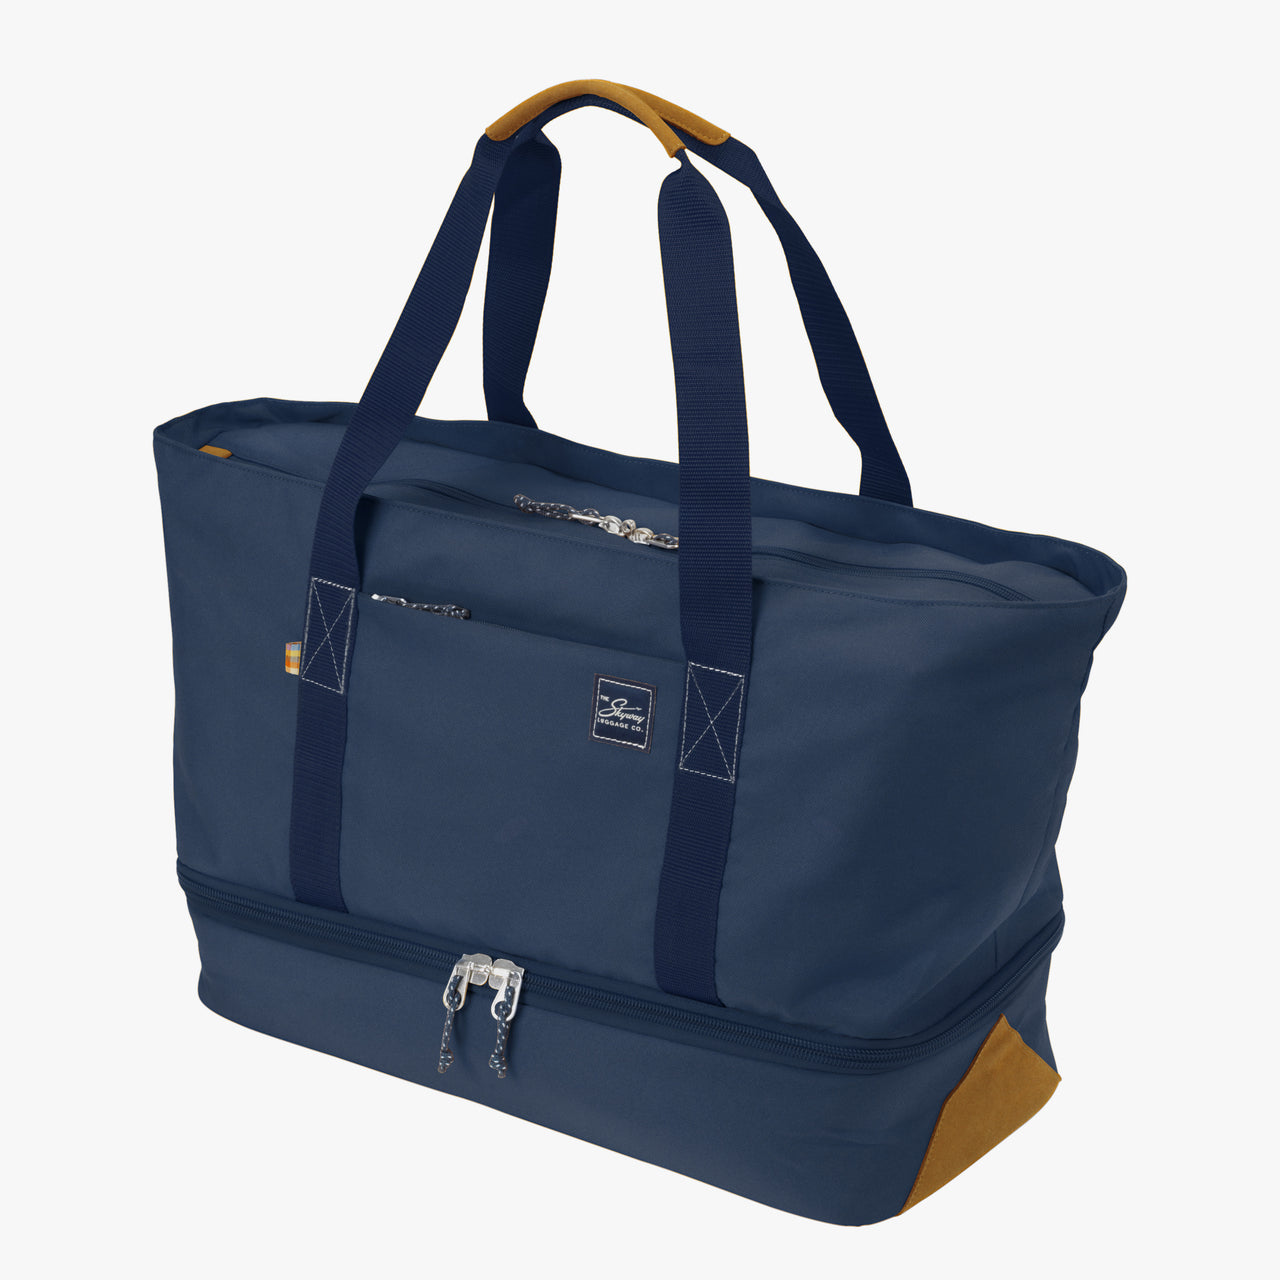 Whidbey Travel Tote in Blue